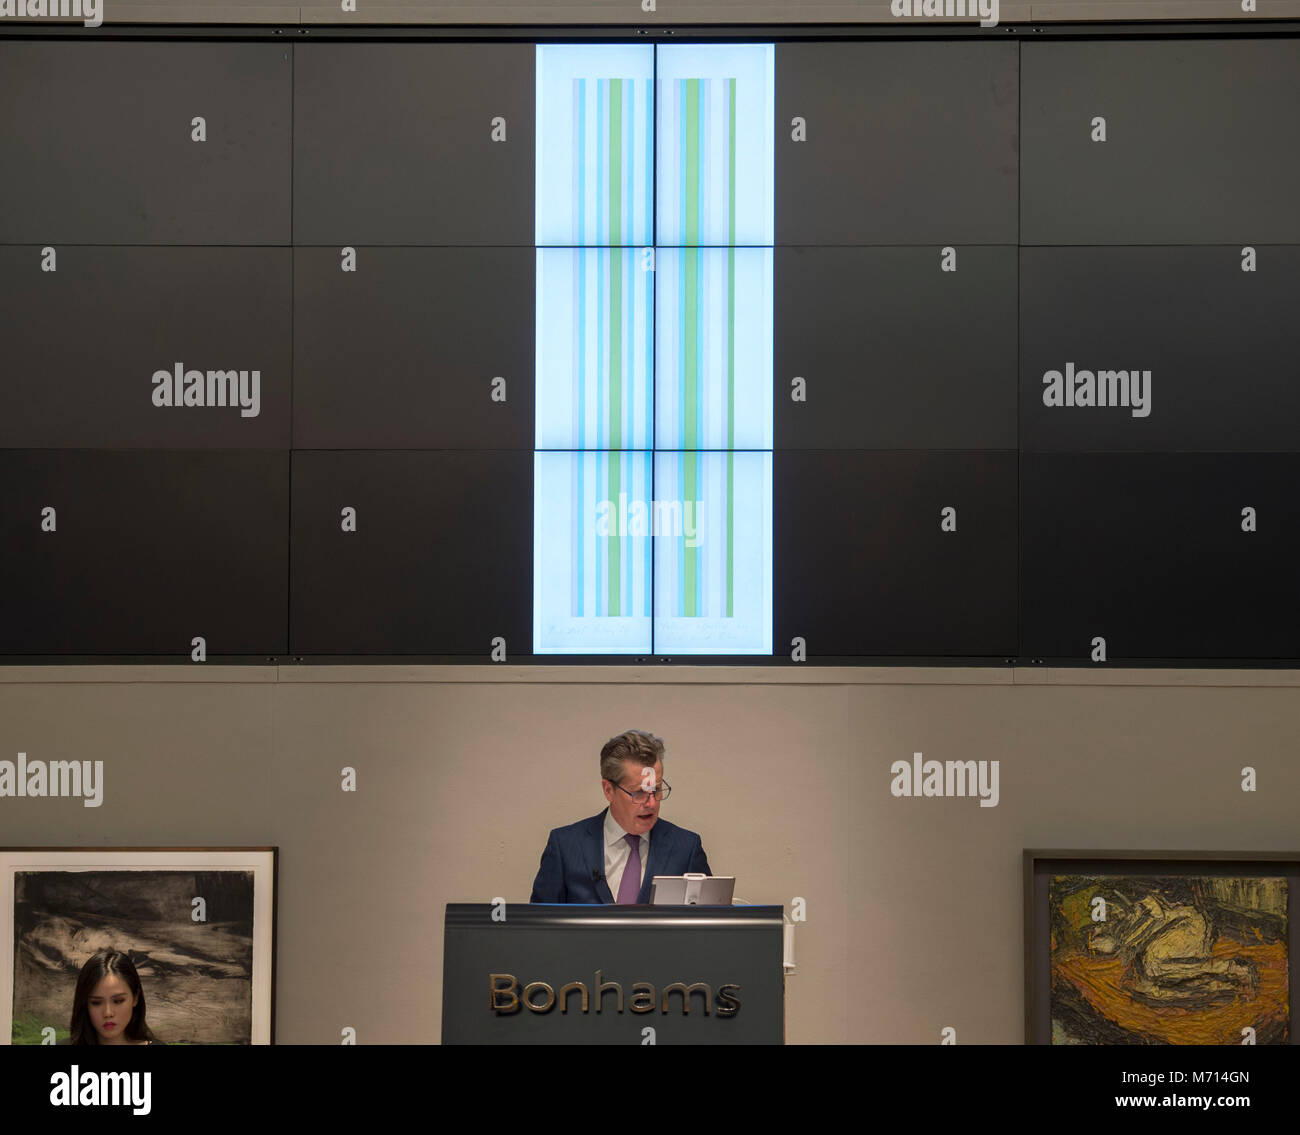 Bonhams, New Bond Street, London, UK. 7 March 2018. Bridget Riley's Yellow affected by Red and Blue sells for £32,000 - Stock Image